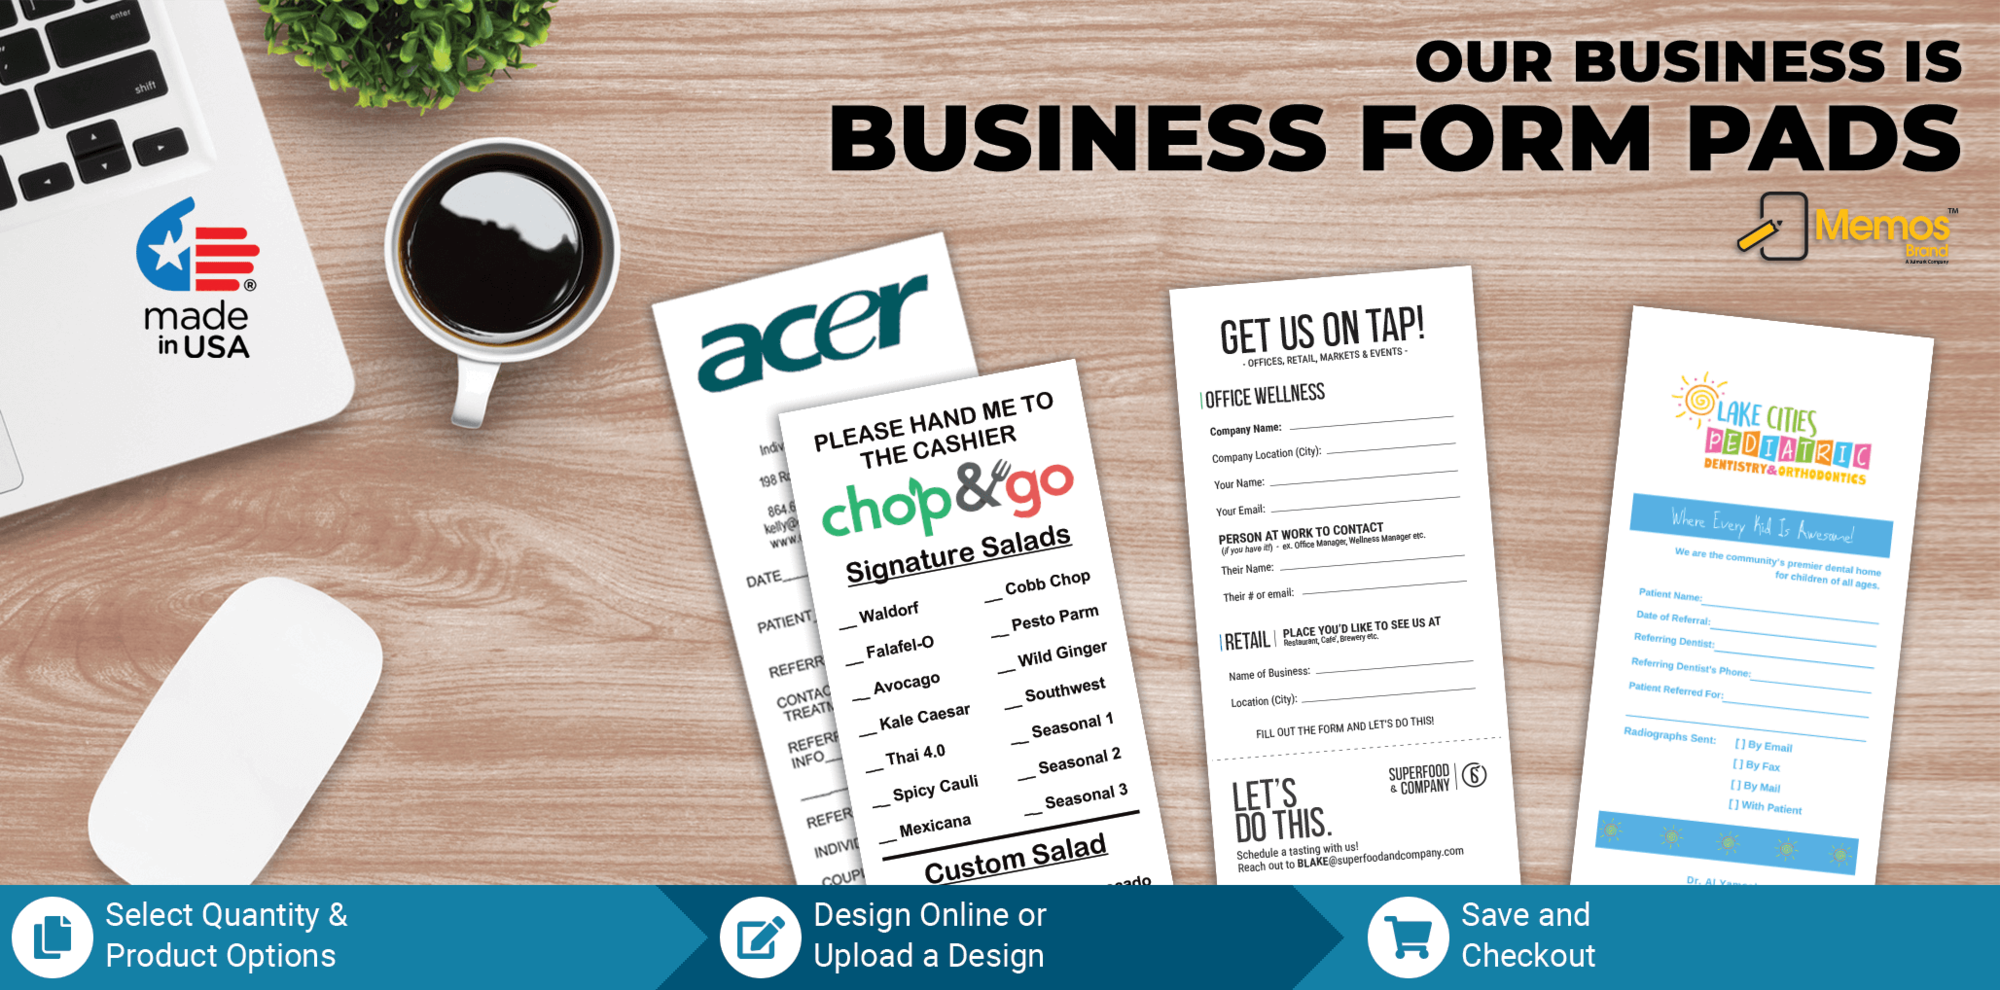 https://printpps.com/images/products_gallery_images/Banner_3_66x8_5-BusinessForm-Pads_ProdFeat_Cover25.png